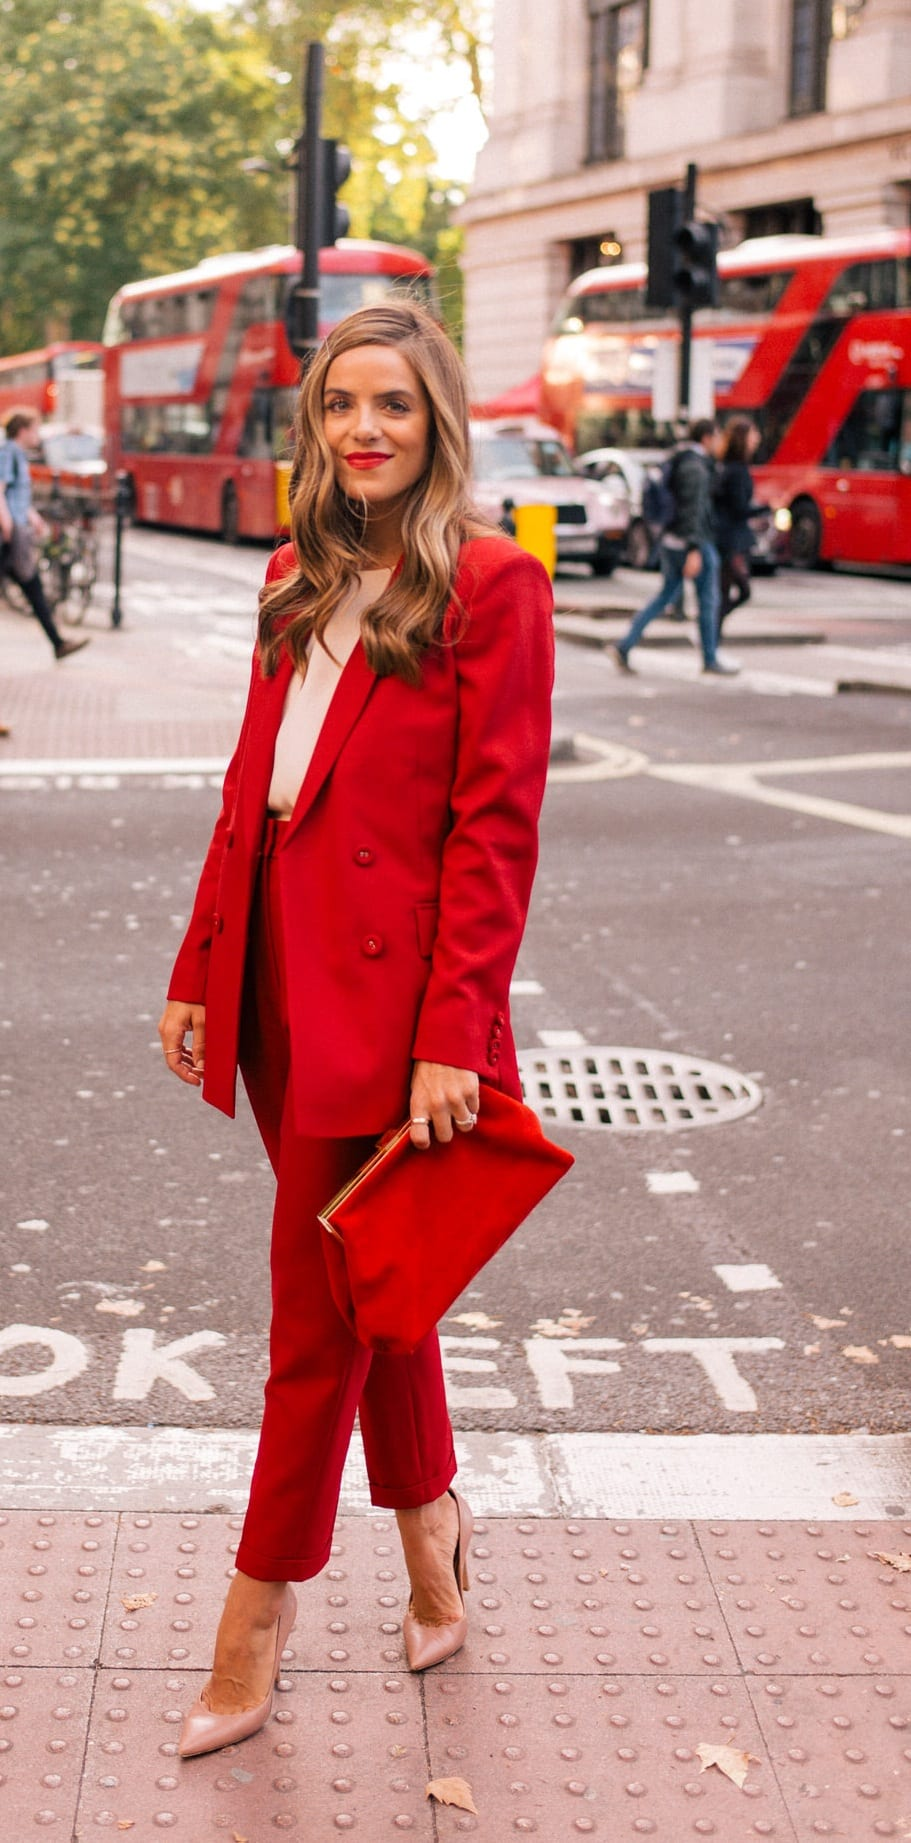 Women's-Red-Suit-Outfit